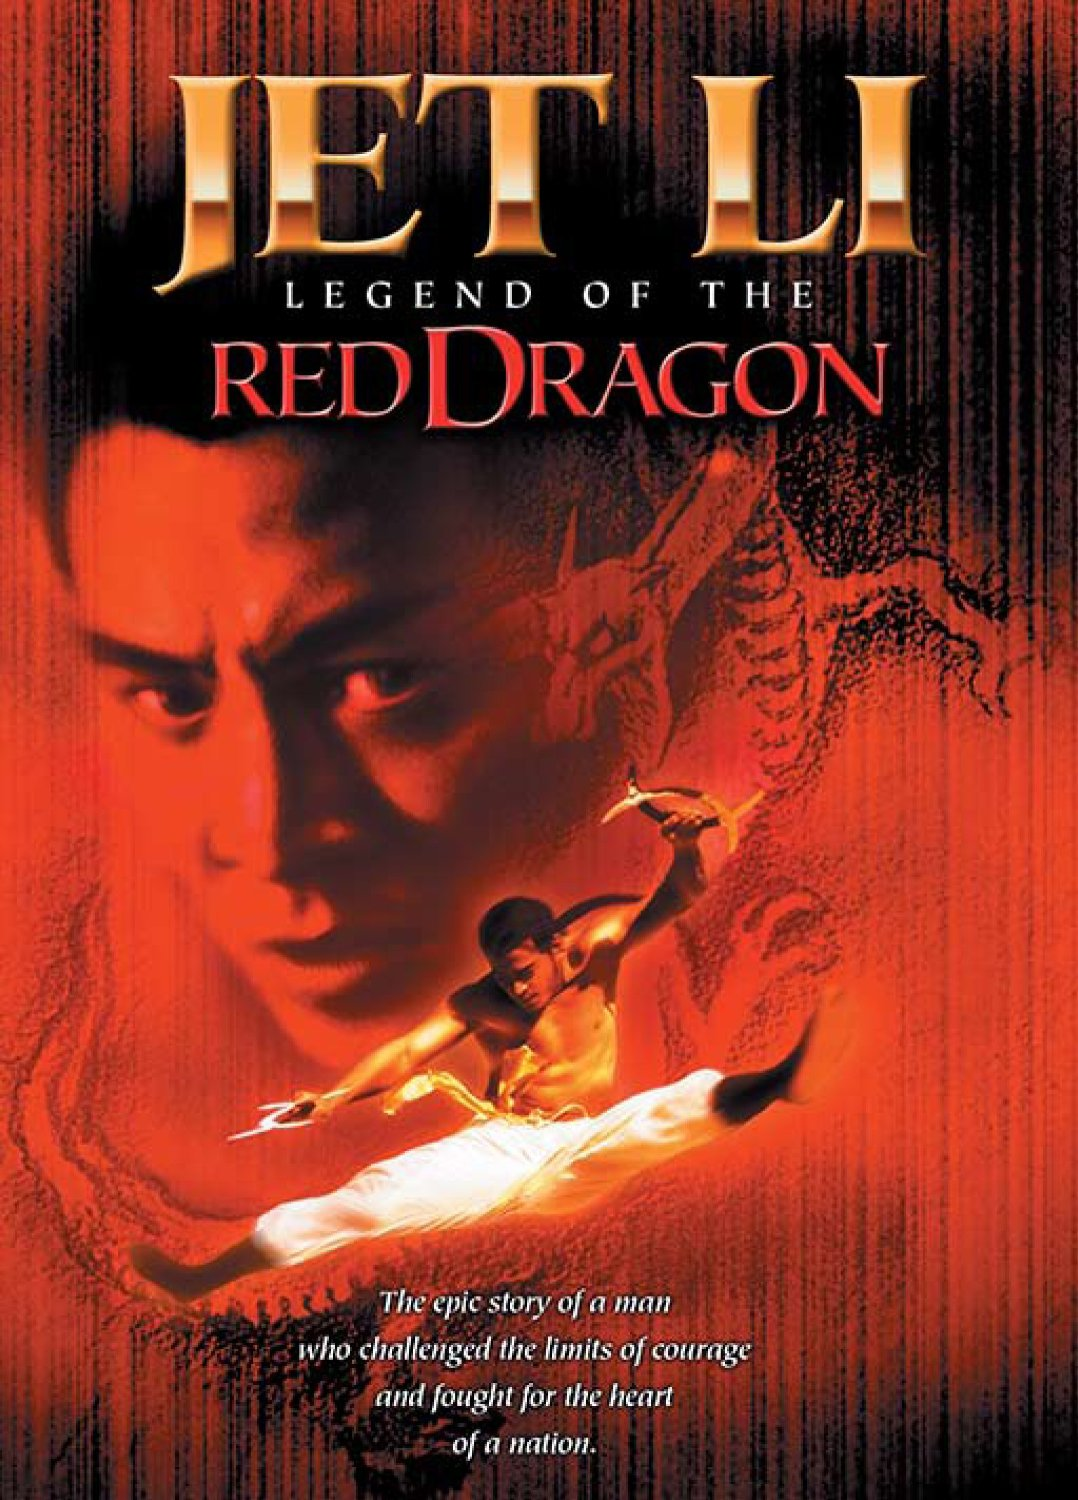 Legenda Czerwonego Smoka / Legend of the Red Dragon